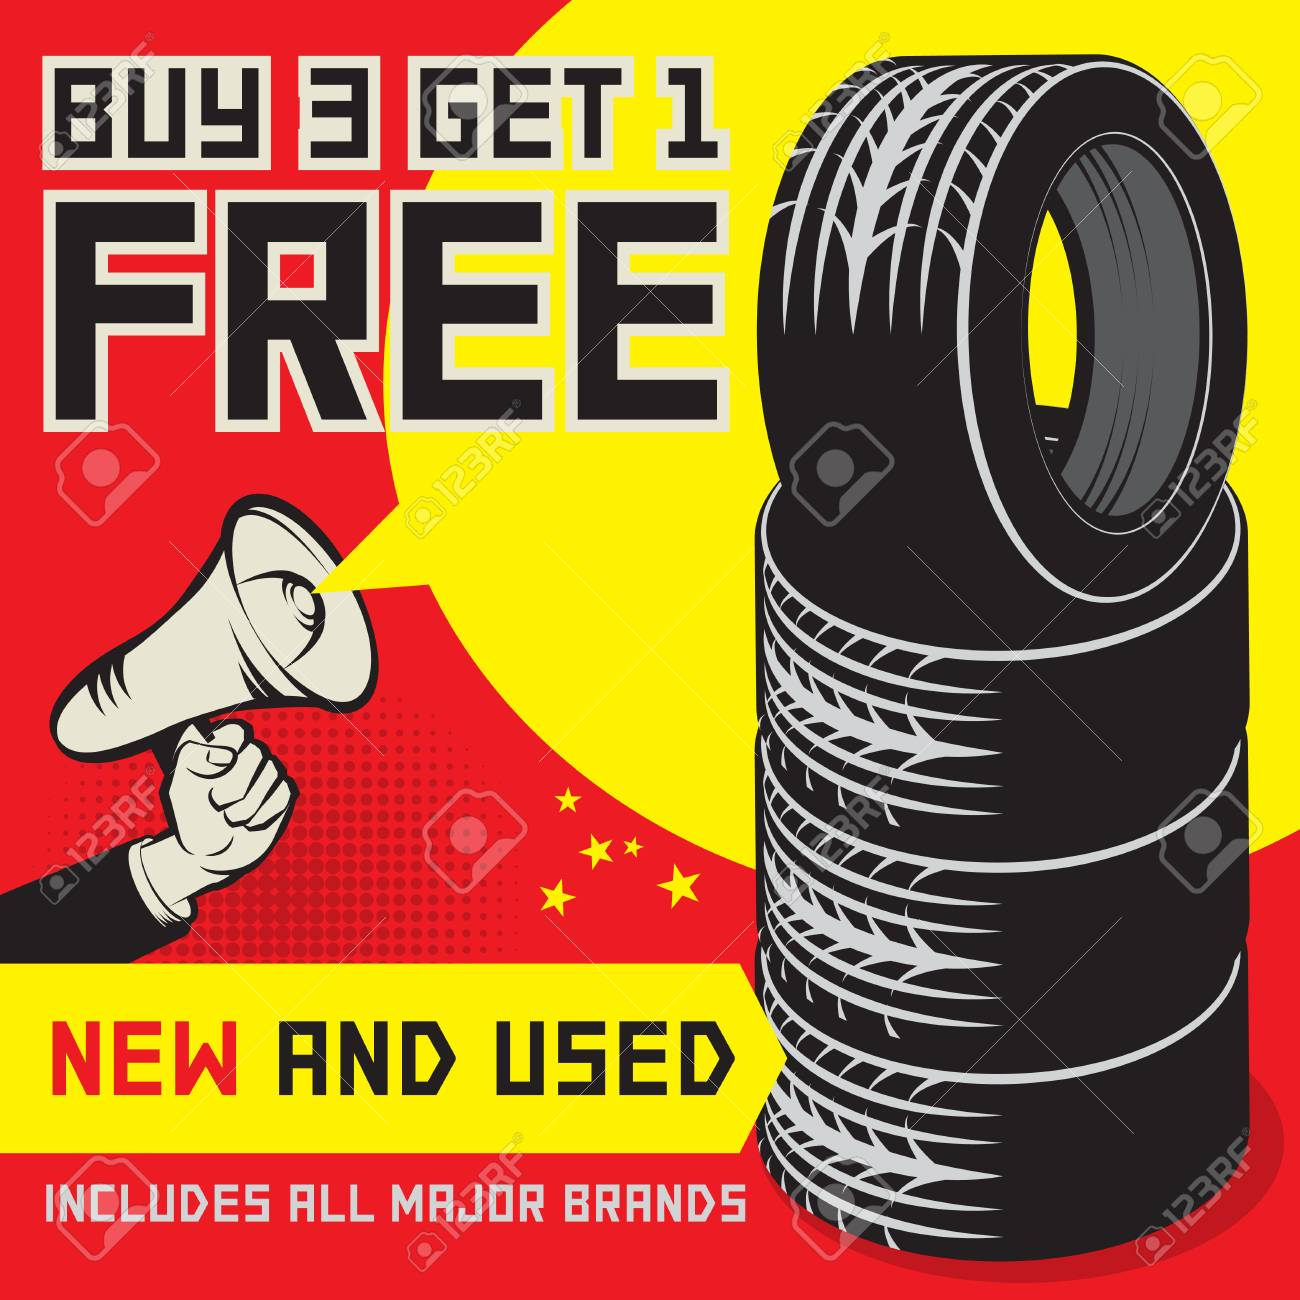 Buy 3 Get 1 Free Tires >> Vintage Tire Service Or Garage Poster With Text Buy 3 Get 1 Free